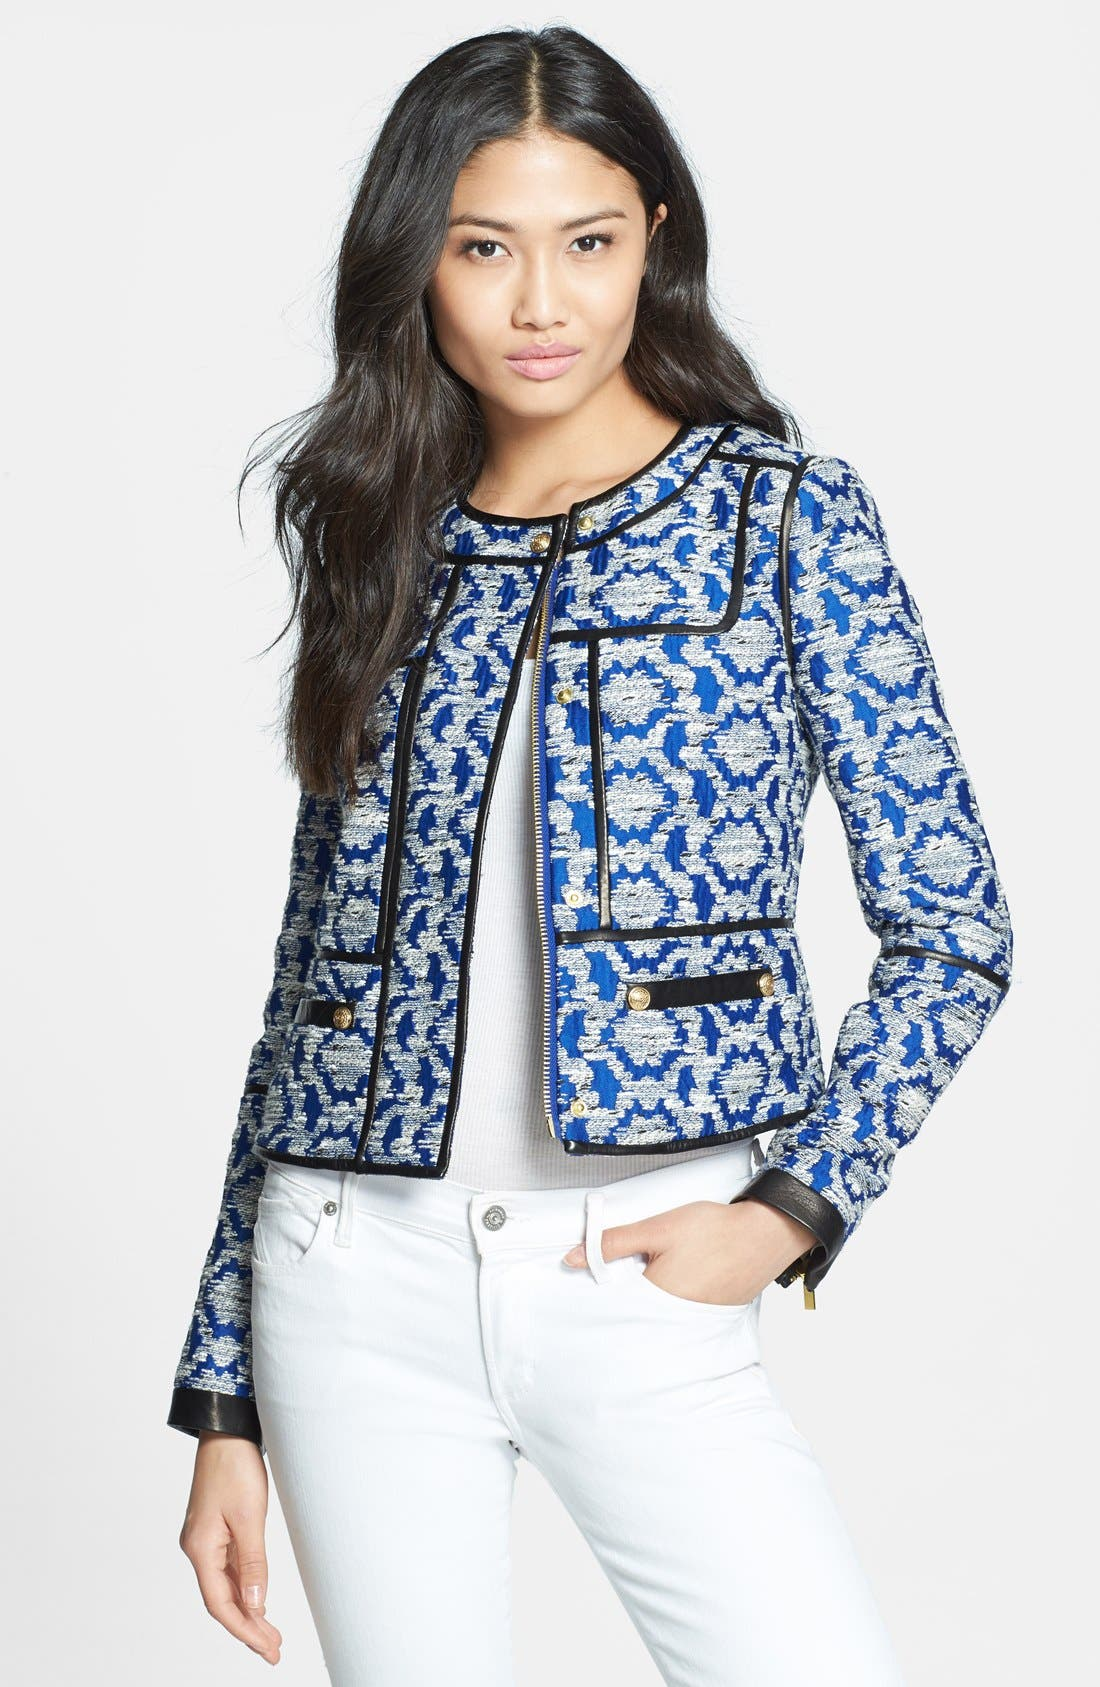 Alternate Image 1 Selected - Diane von Furstenberg 'Maelee' Crop Jacquard Jacket